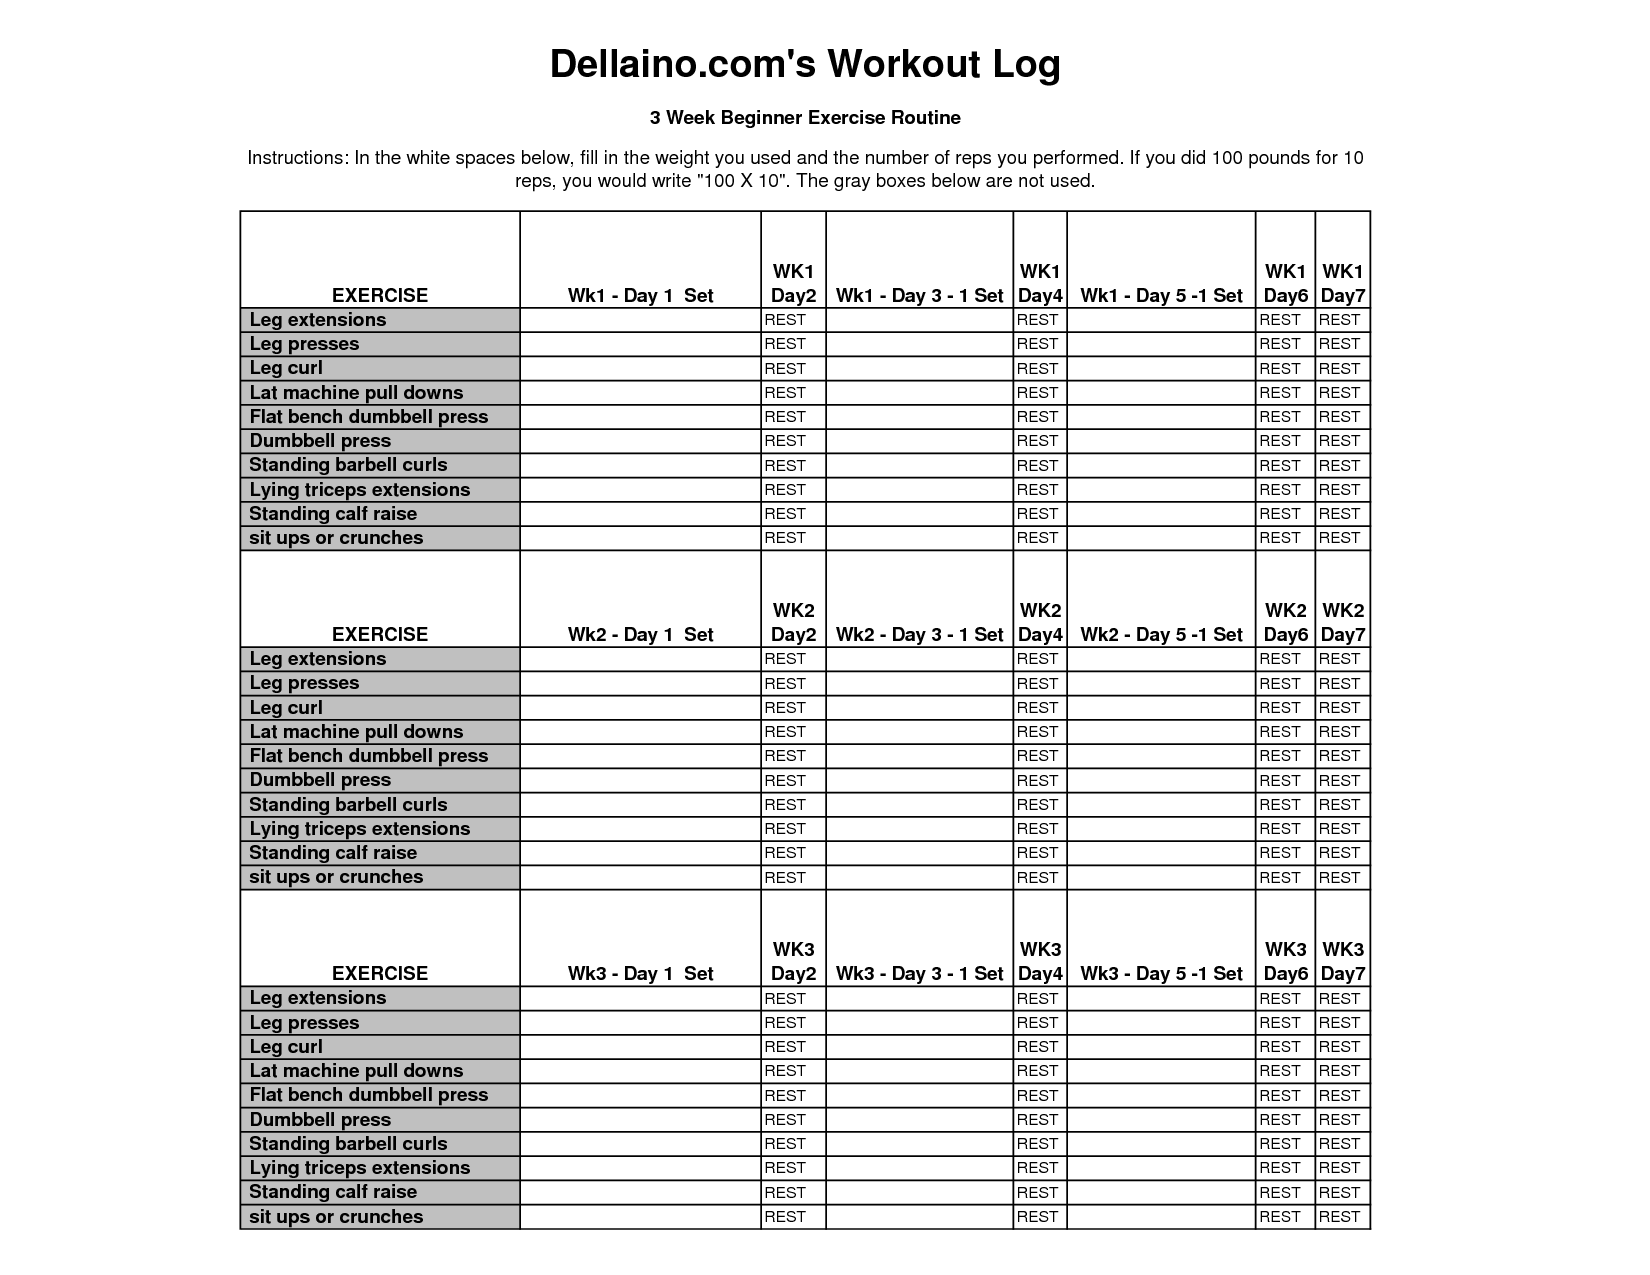 Bodybuilding Com S Workout Log Excel